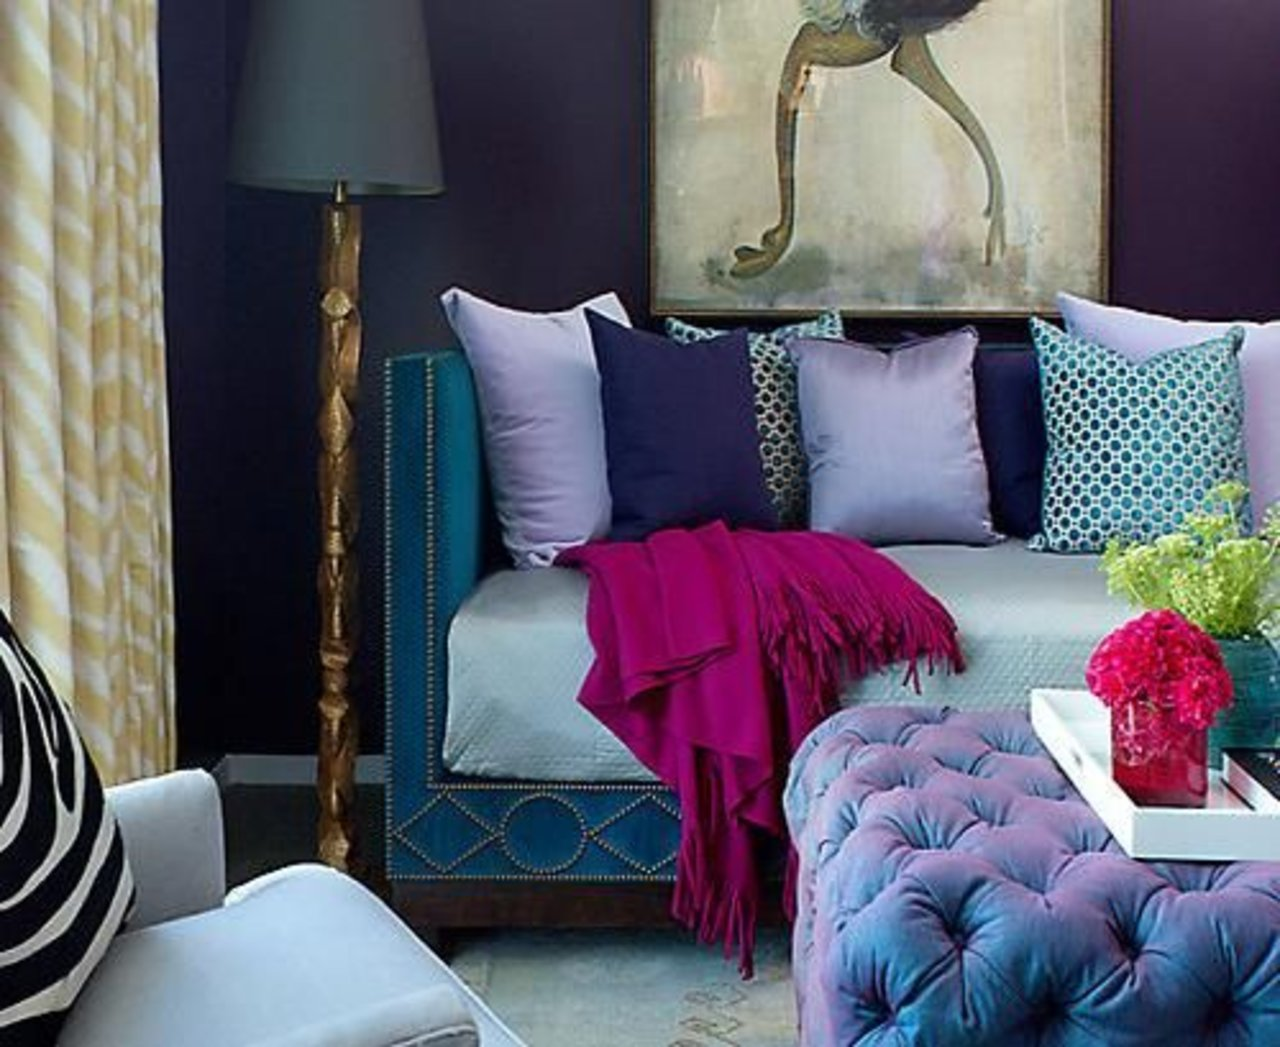 5 ideas for decorating with jewel tones this season the style4 decor